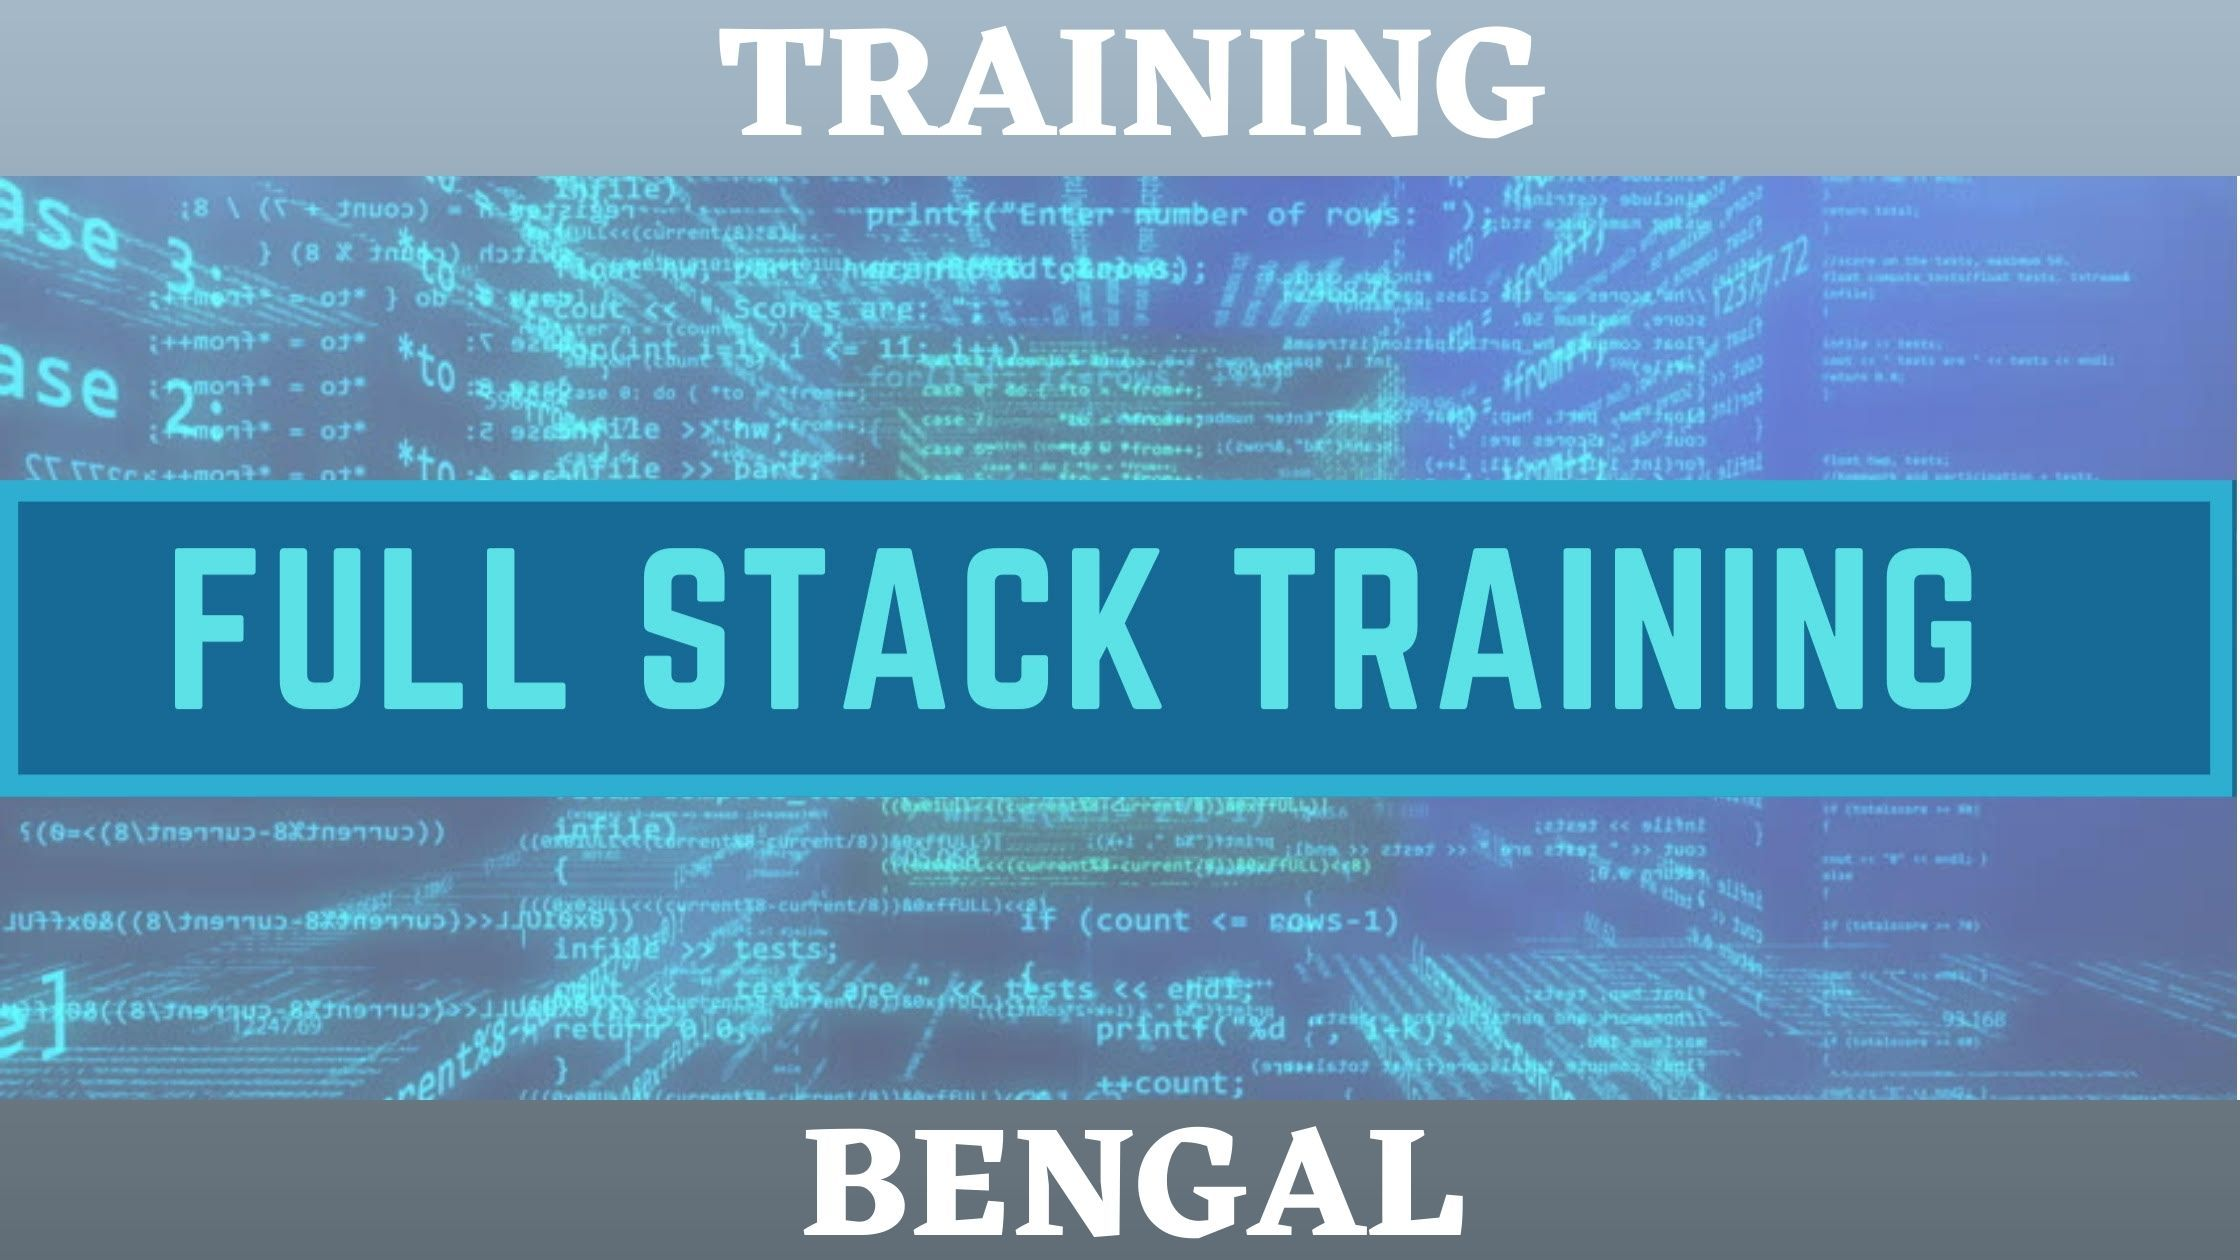 full_stack_training_in_bengal-background.jpeg